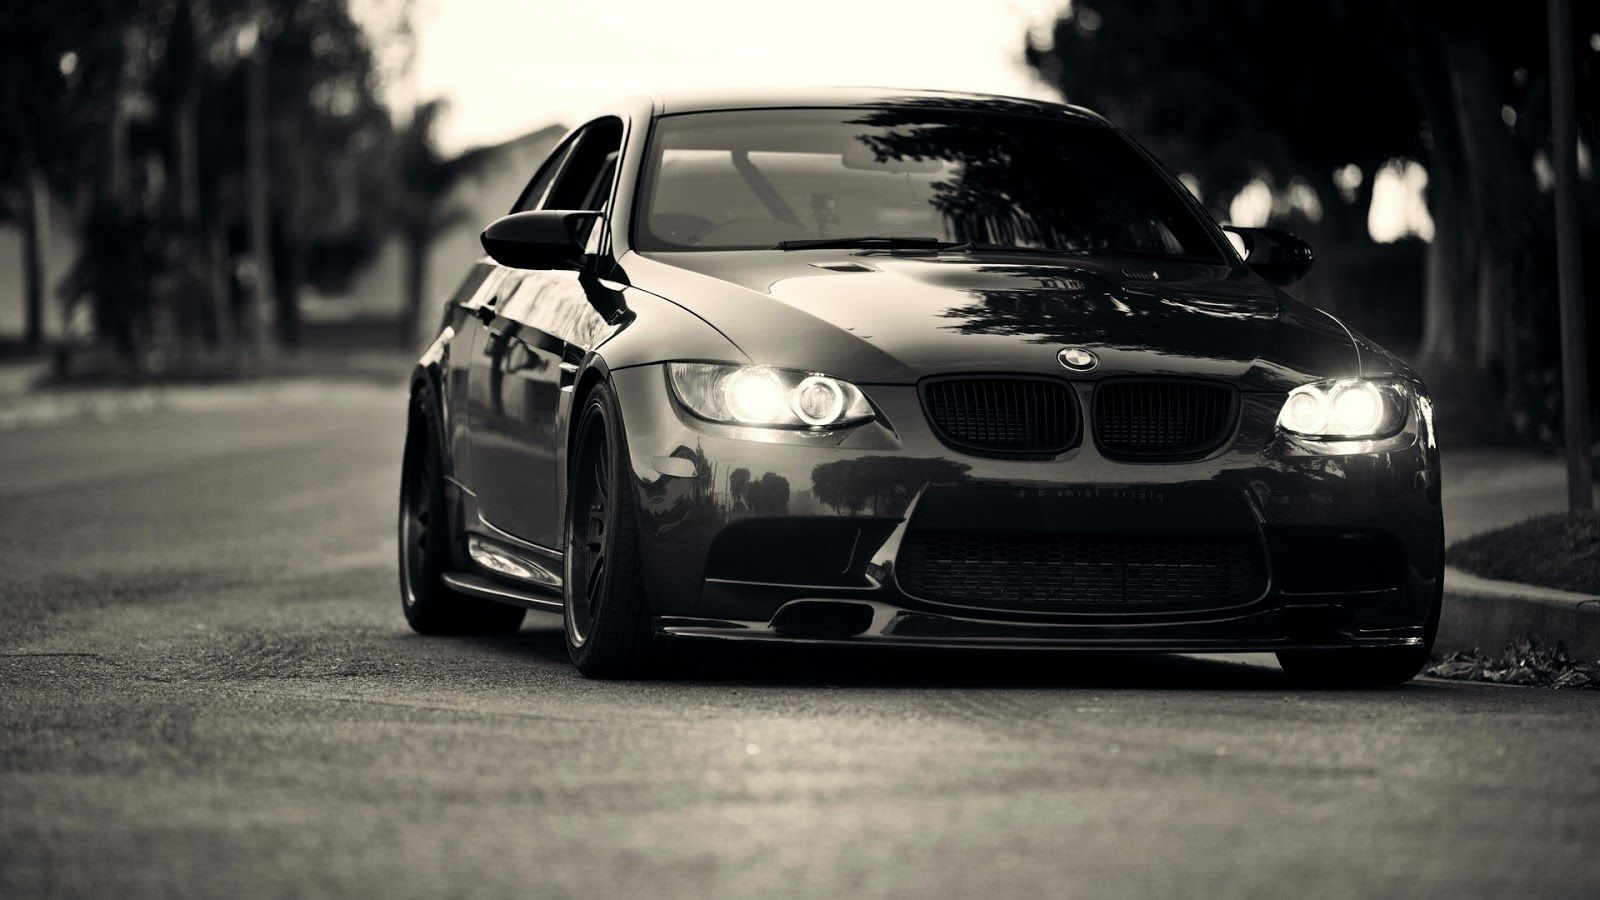 bmw wallpaper black 1920×1080 bmw wallpapers black (46 wallpapers